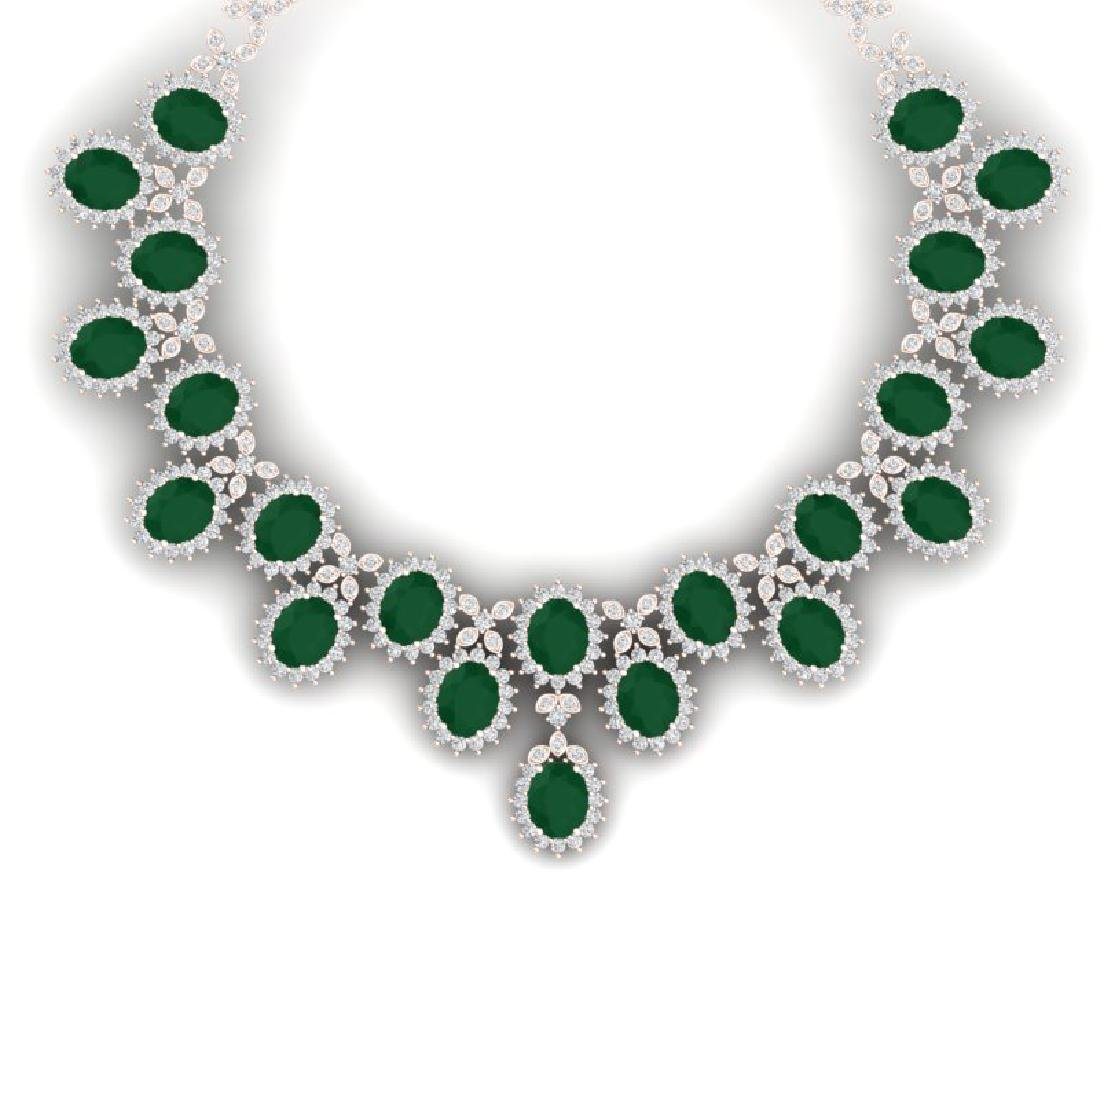 81 CTW Royalty Emerald & VS Diamond Necklace 18K Rose